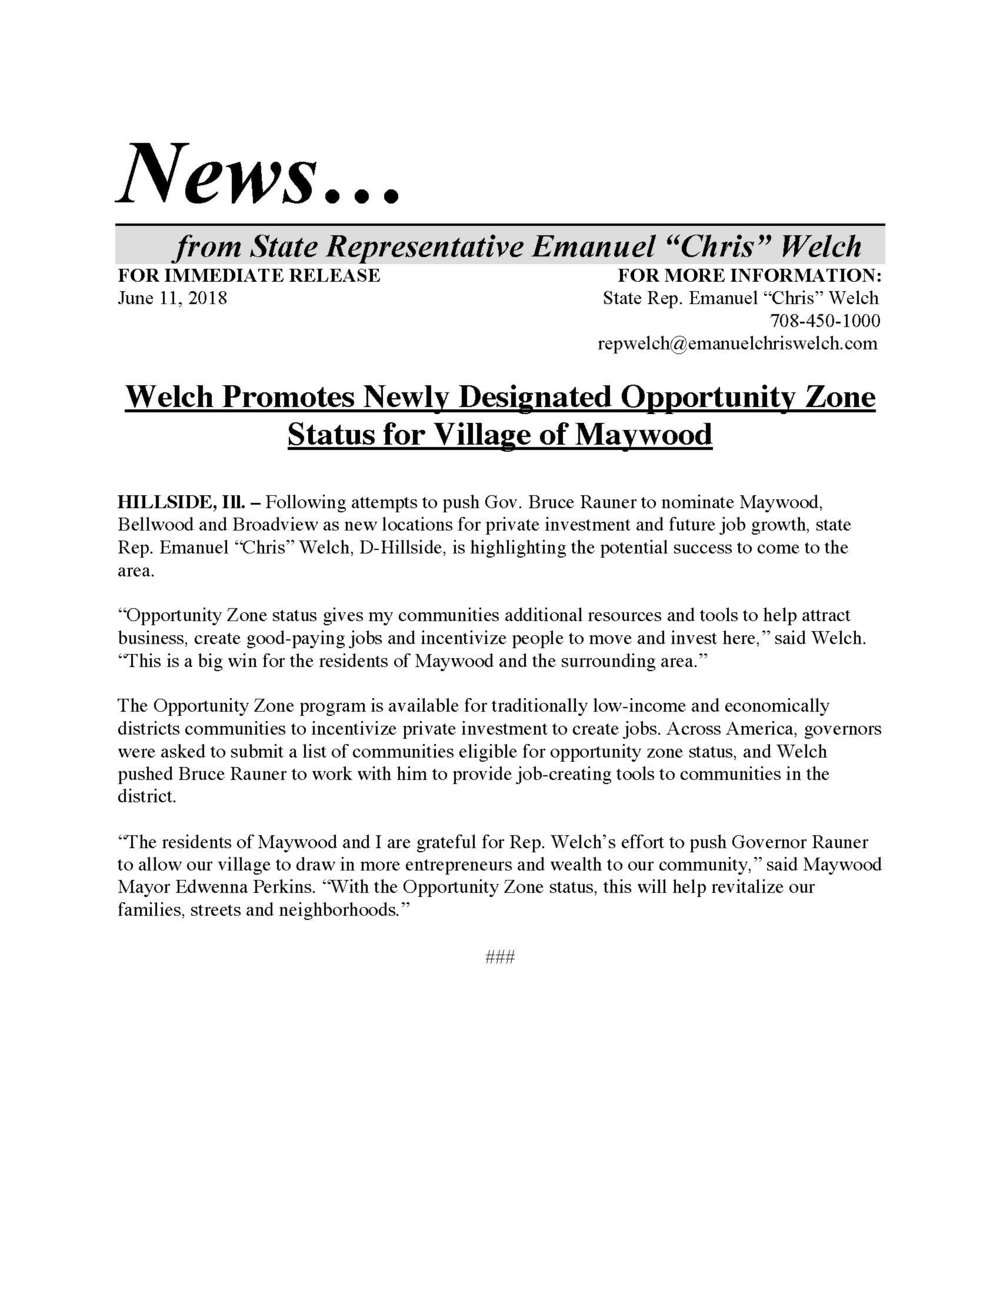 Welch Promotes Newly Designated Opportinity Zone Status for Village of Maywood  (June 11, 2018)